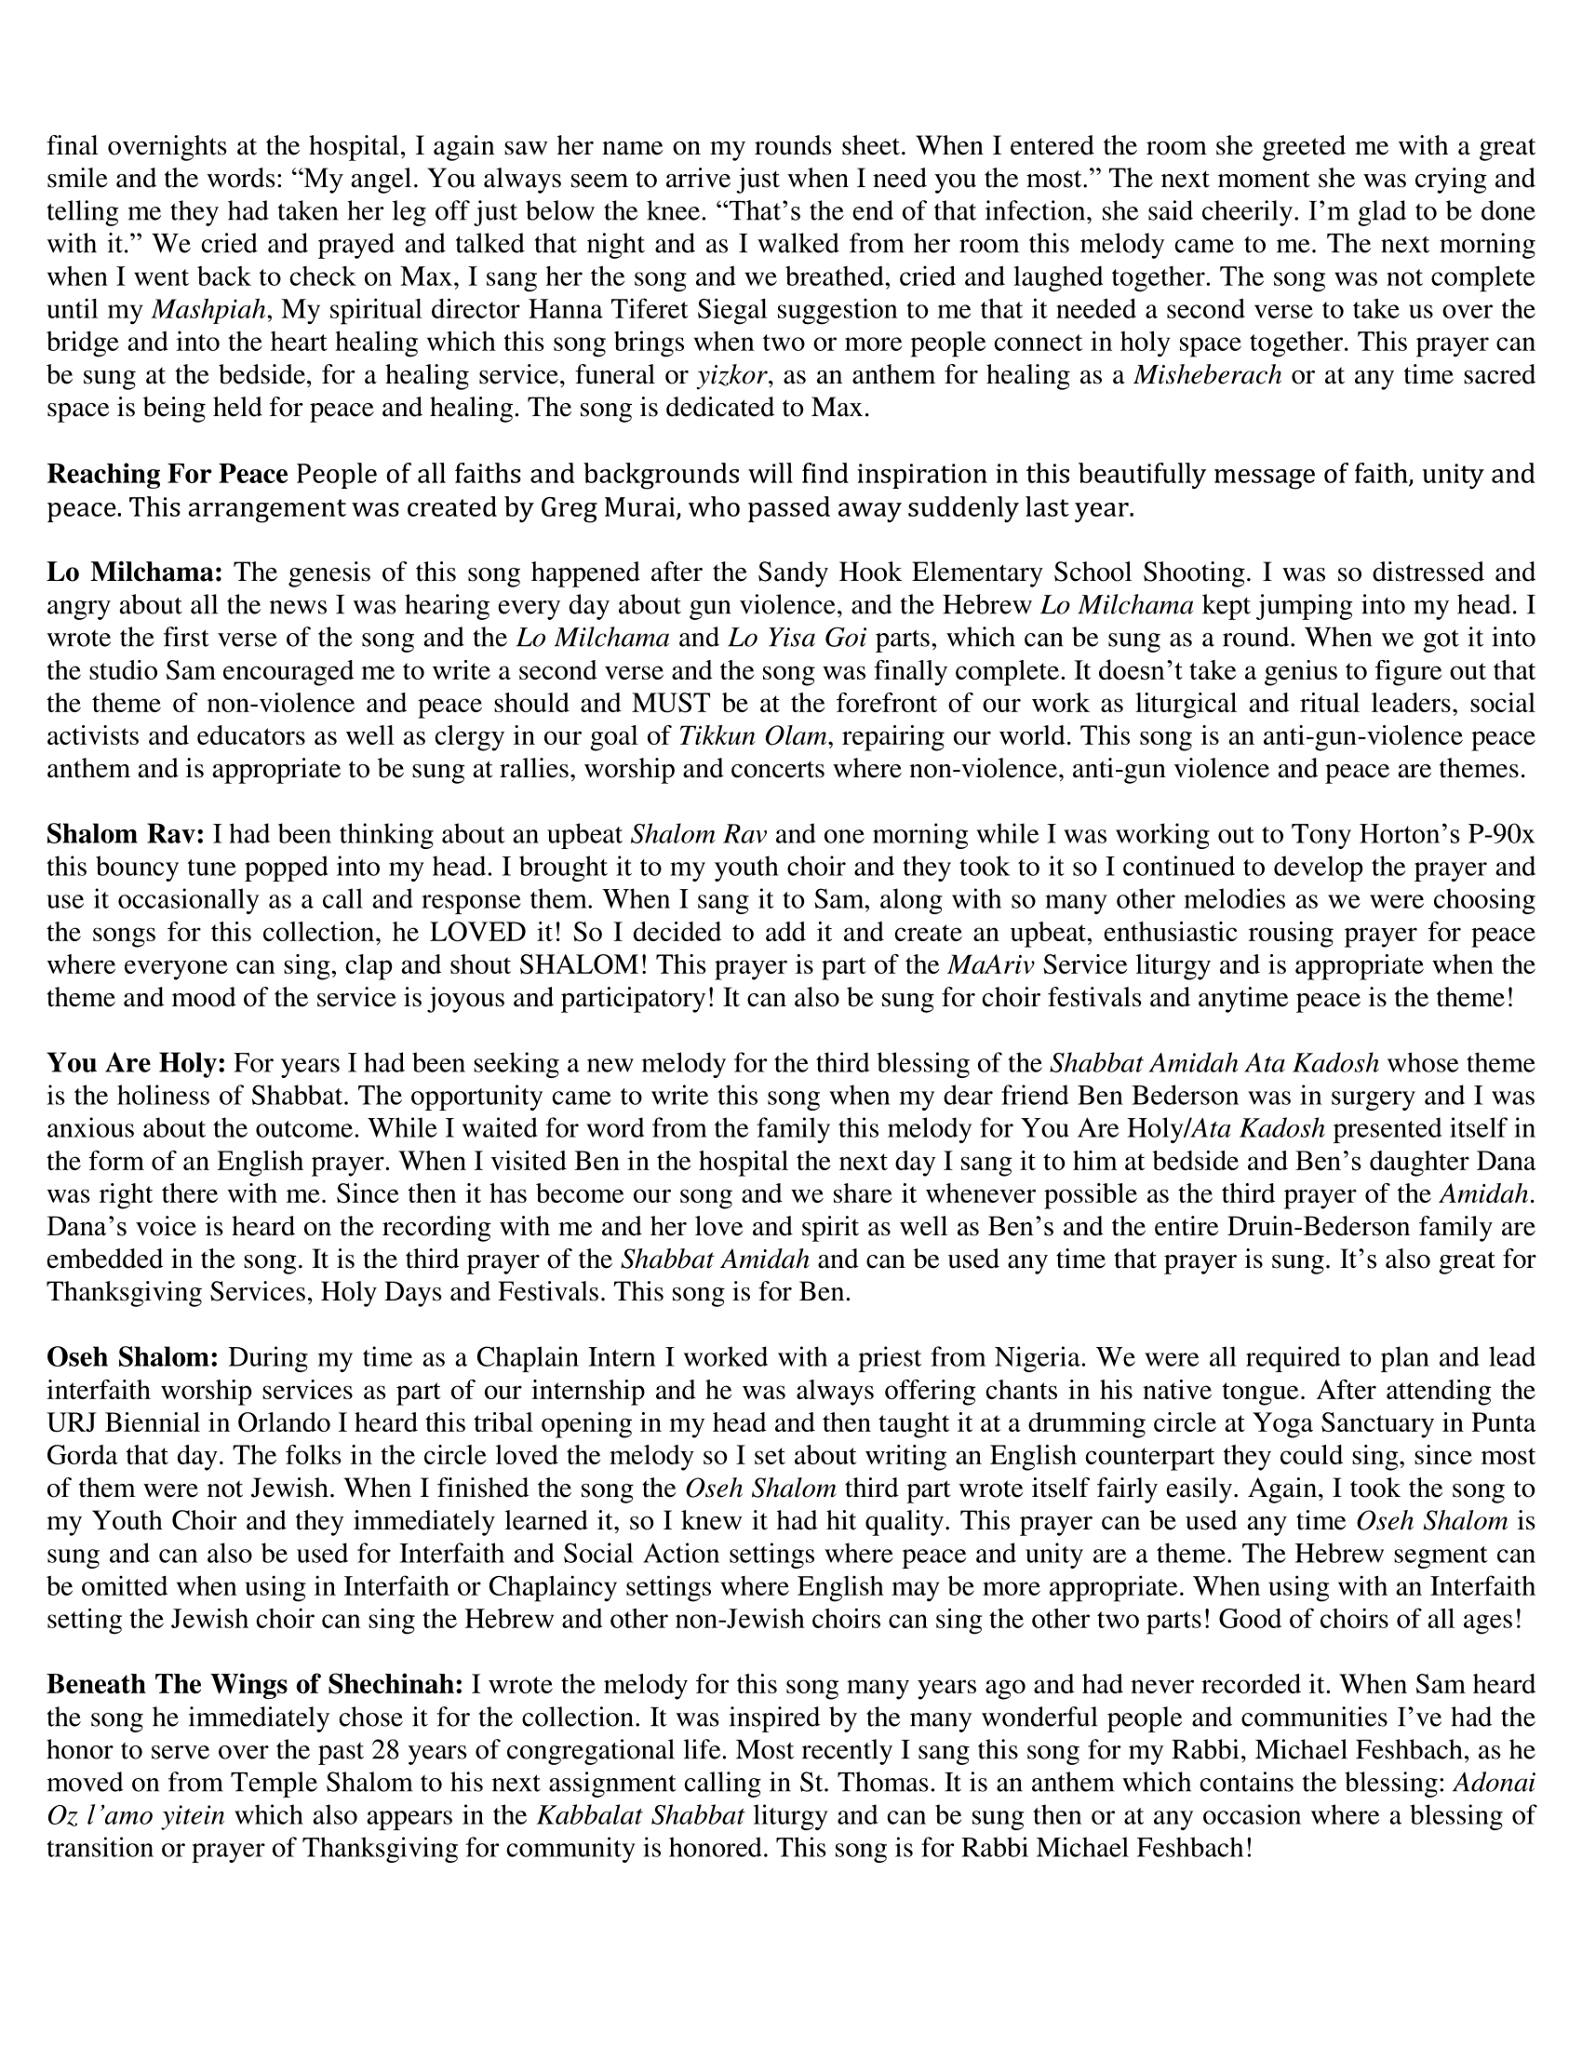 Bridge To Peace CD Release Party Program - Insert page 2